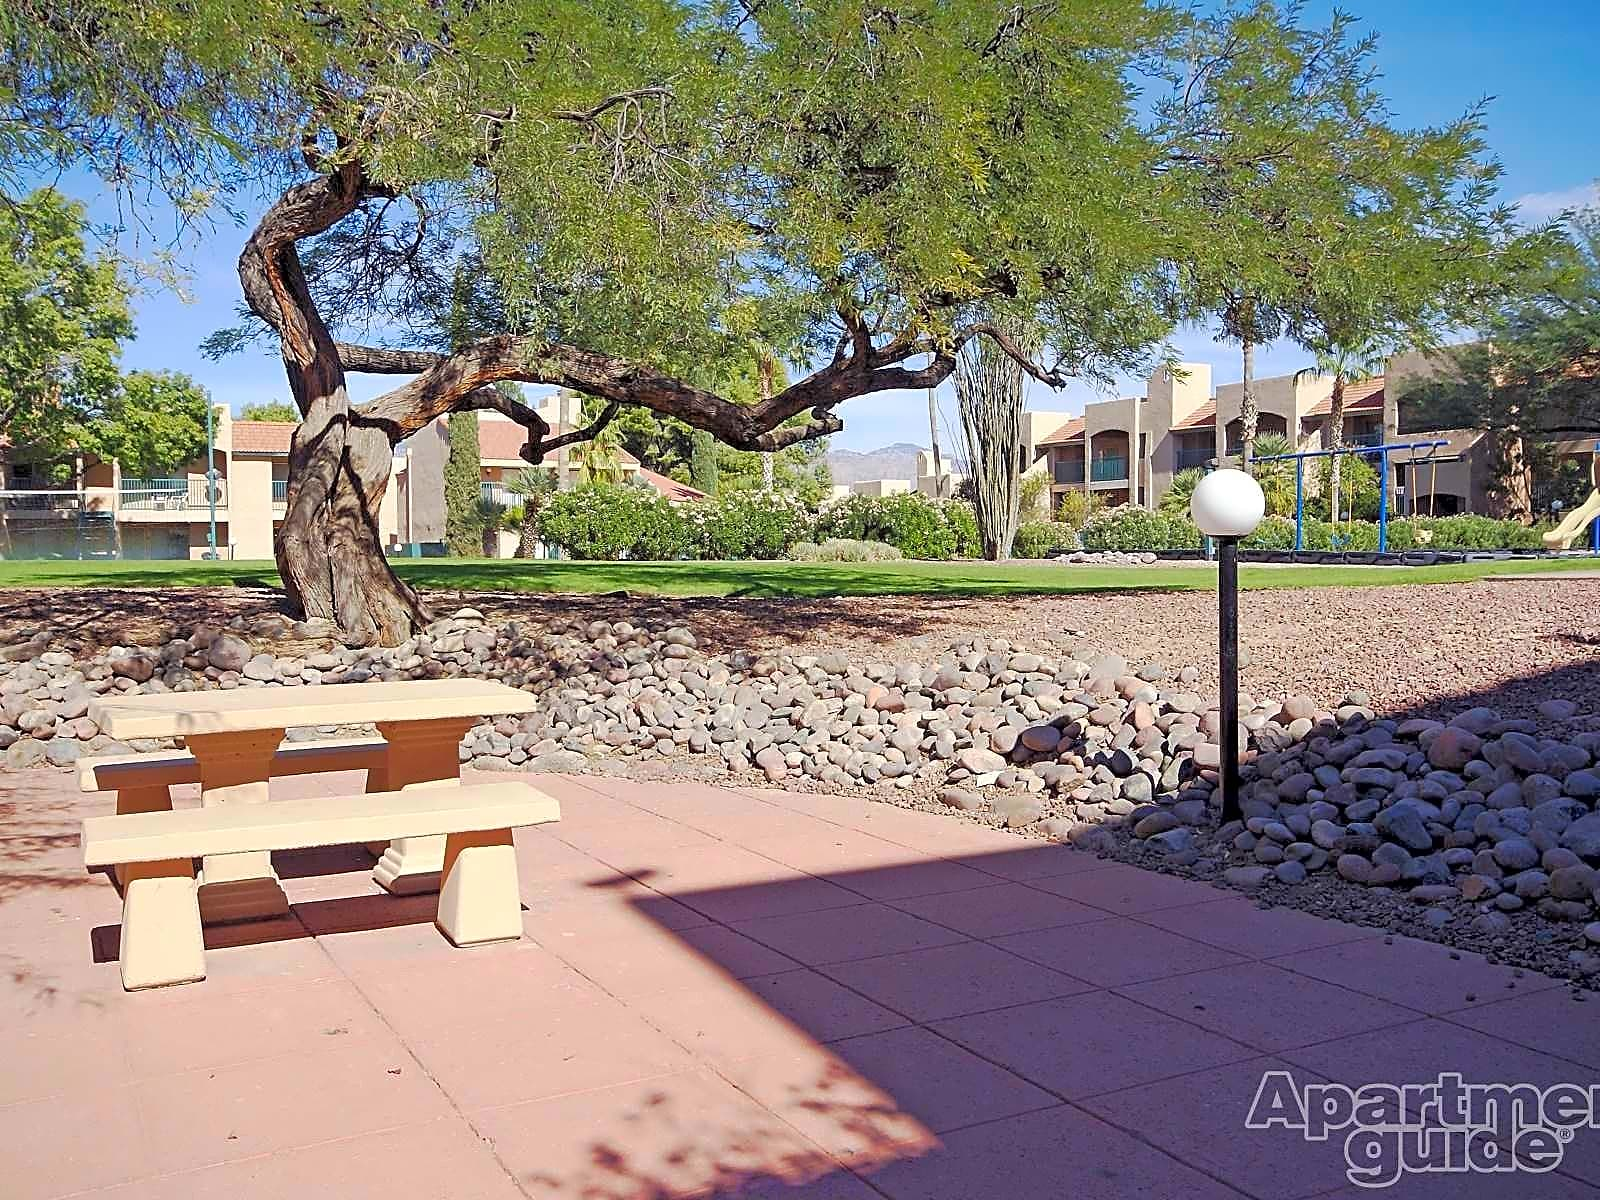 3 Bedroom Houses For Rent In Tucson Az Awesome Tucson Az Houses For Rent Amp Apartments Page 16